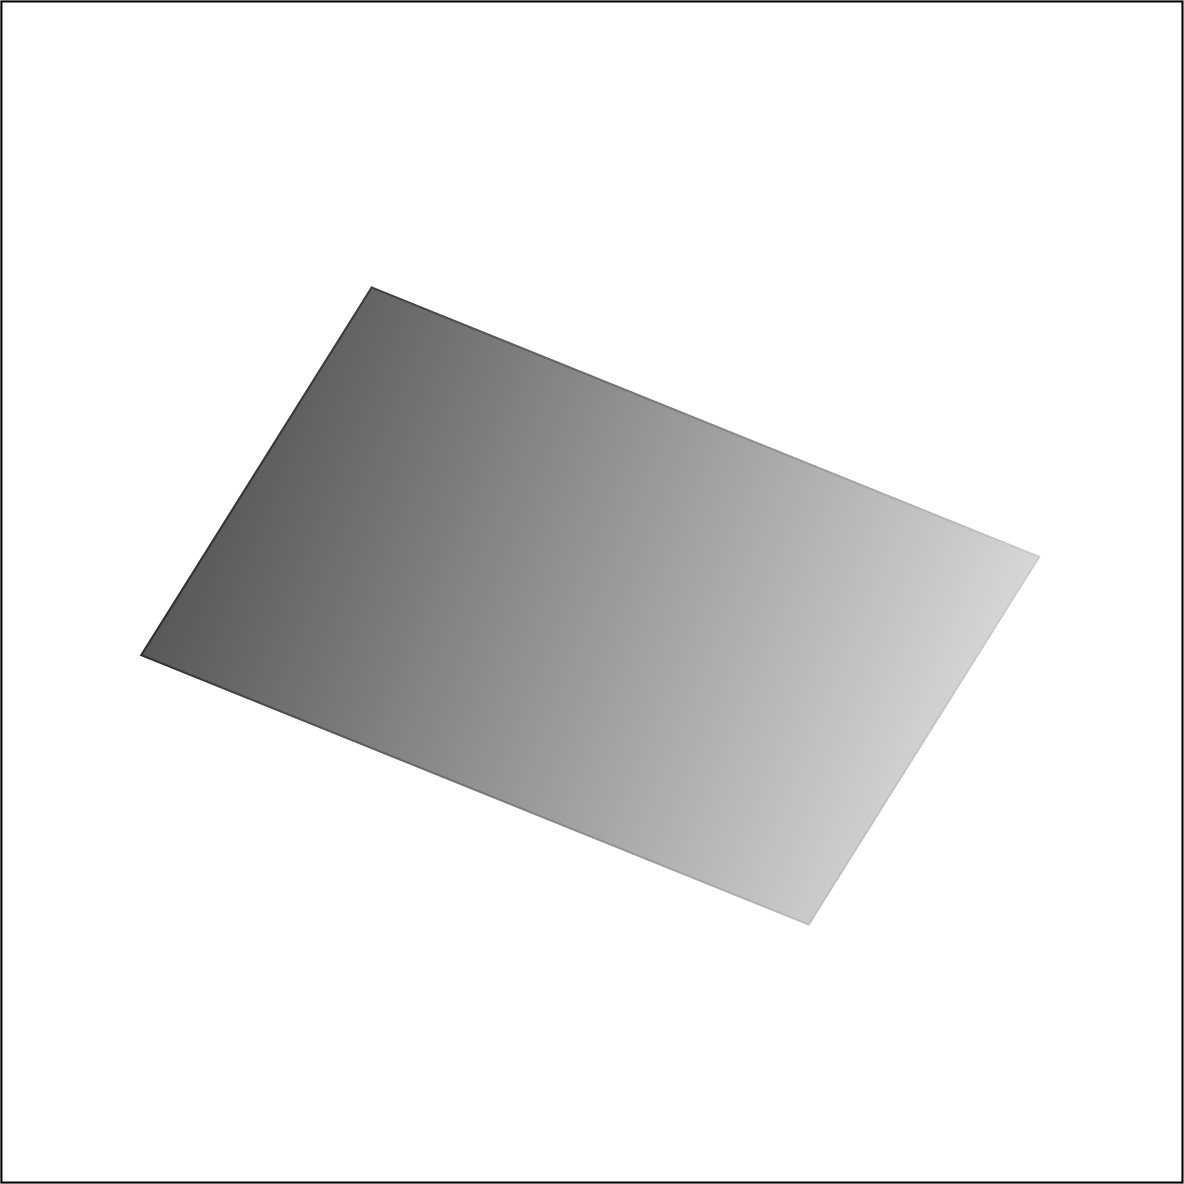 Tiffen ND 6 clear Filter by Accord Equips